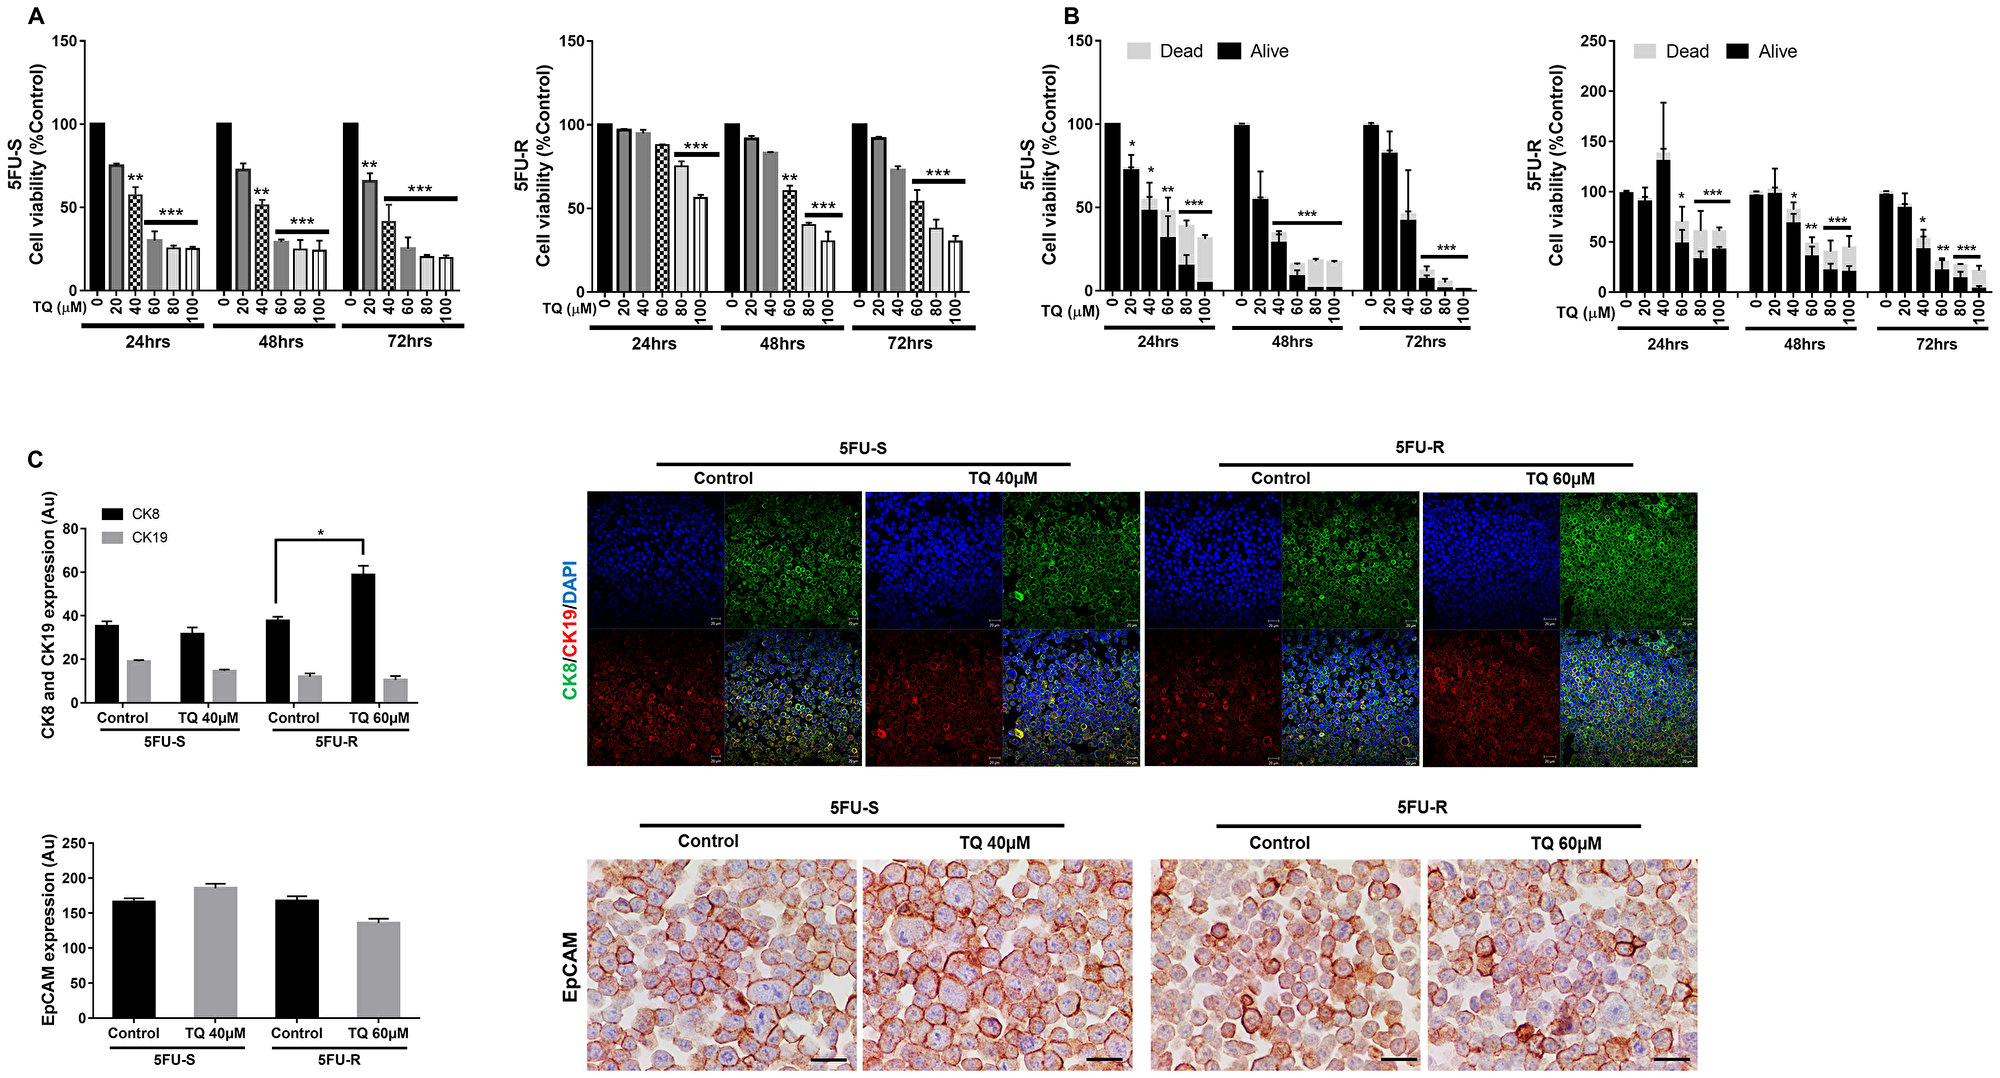 TQ reduces viability of 5FU-sensitive and 5FU-resistant HCT116 colorectal cancer cells.